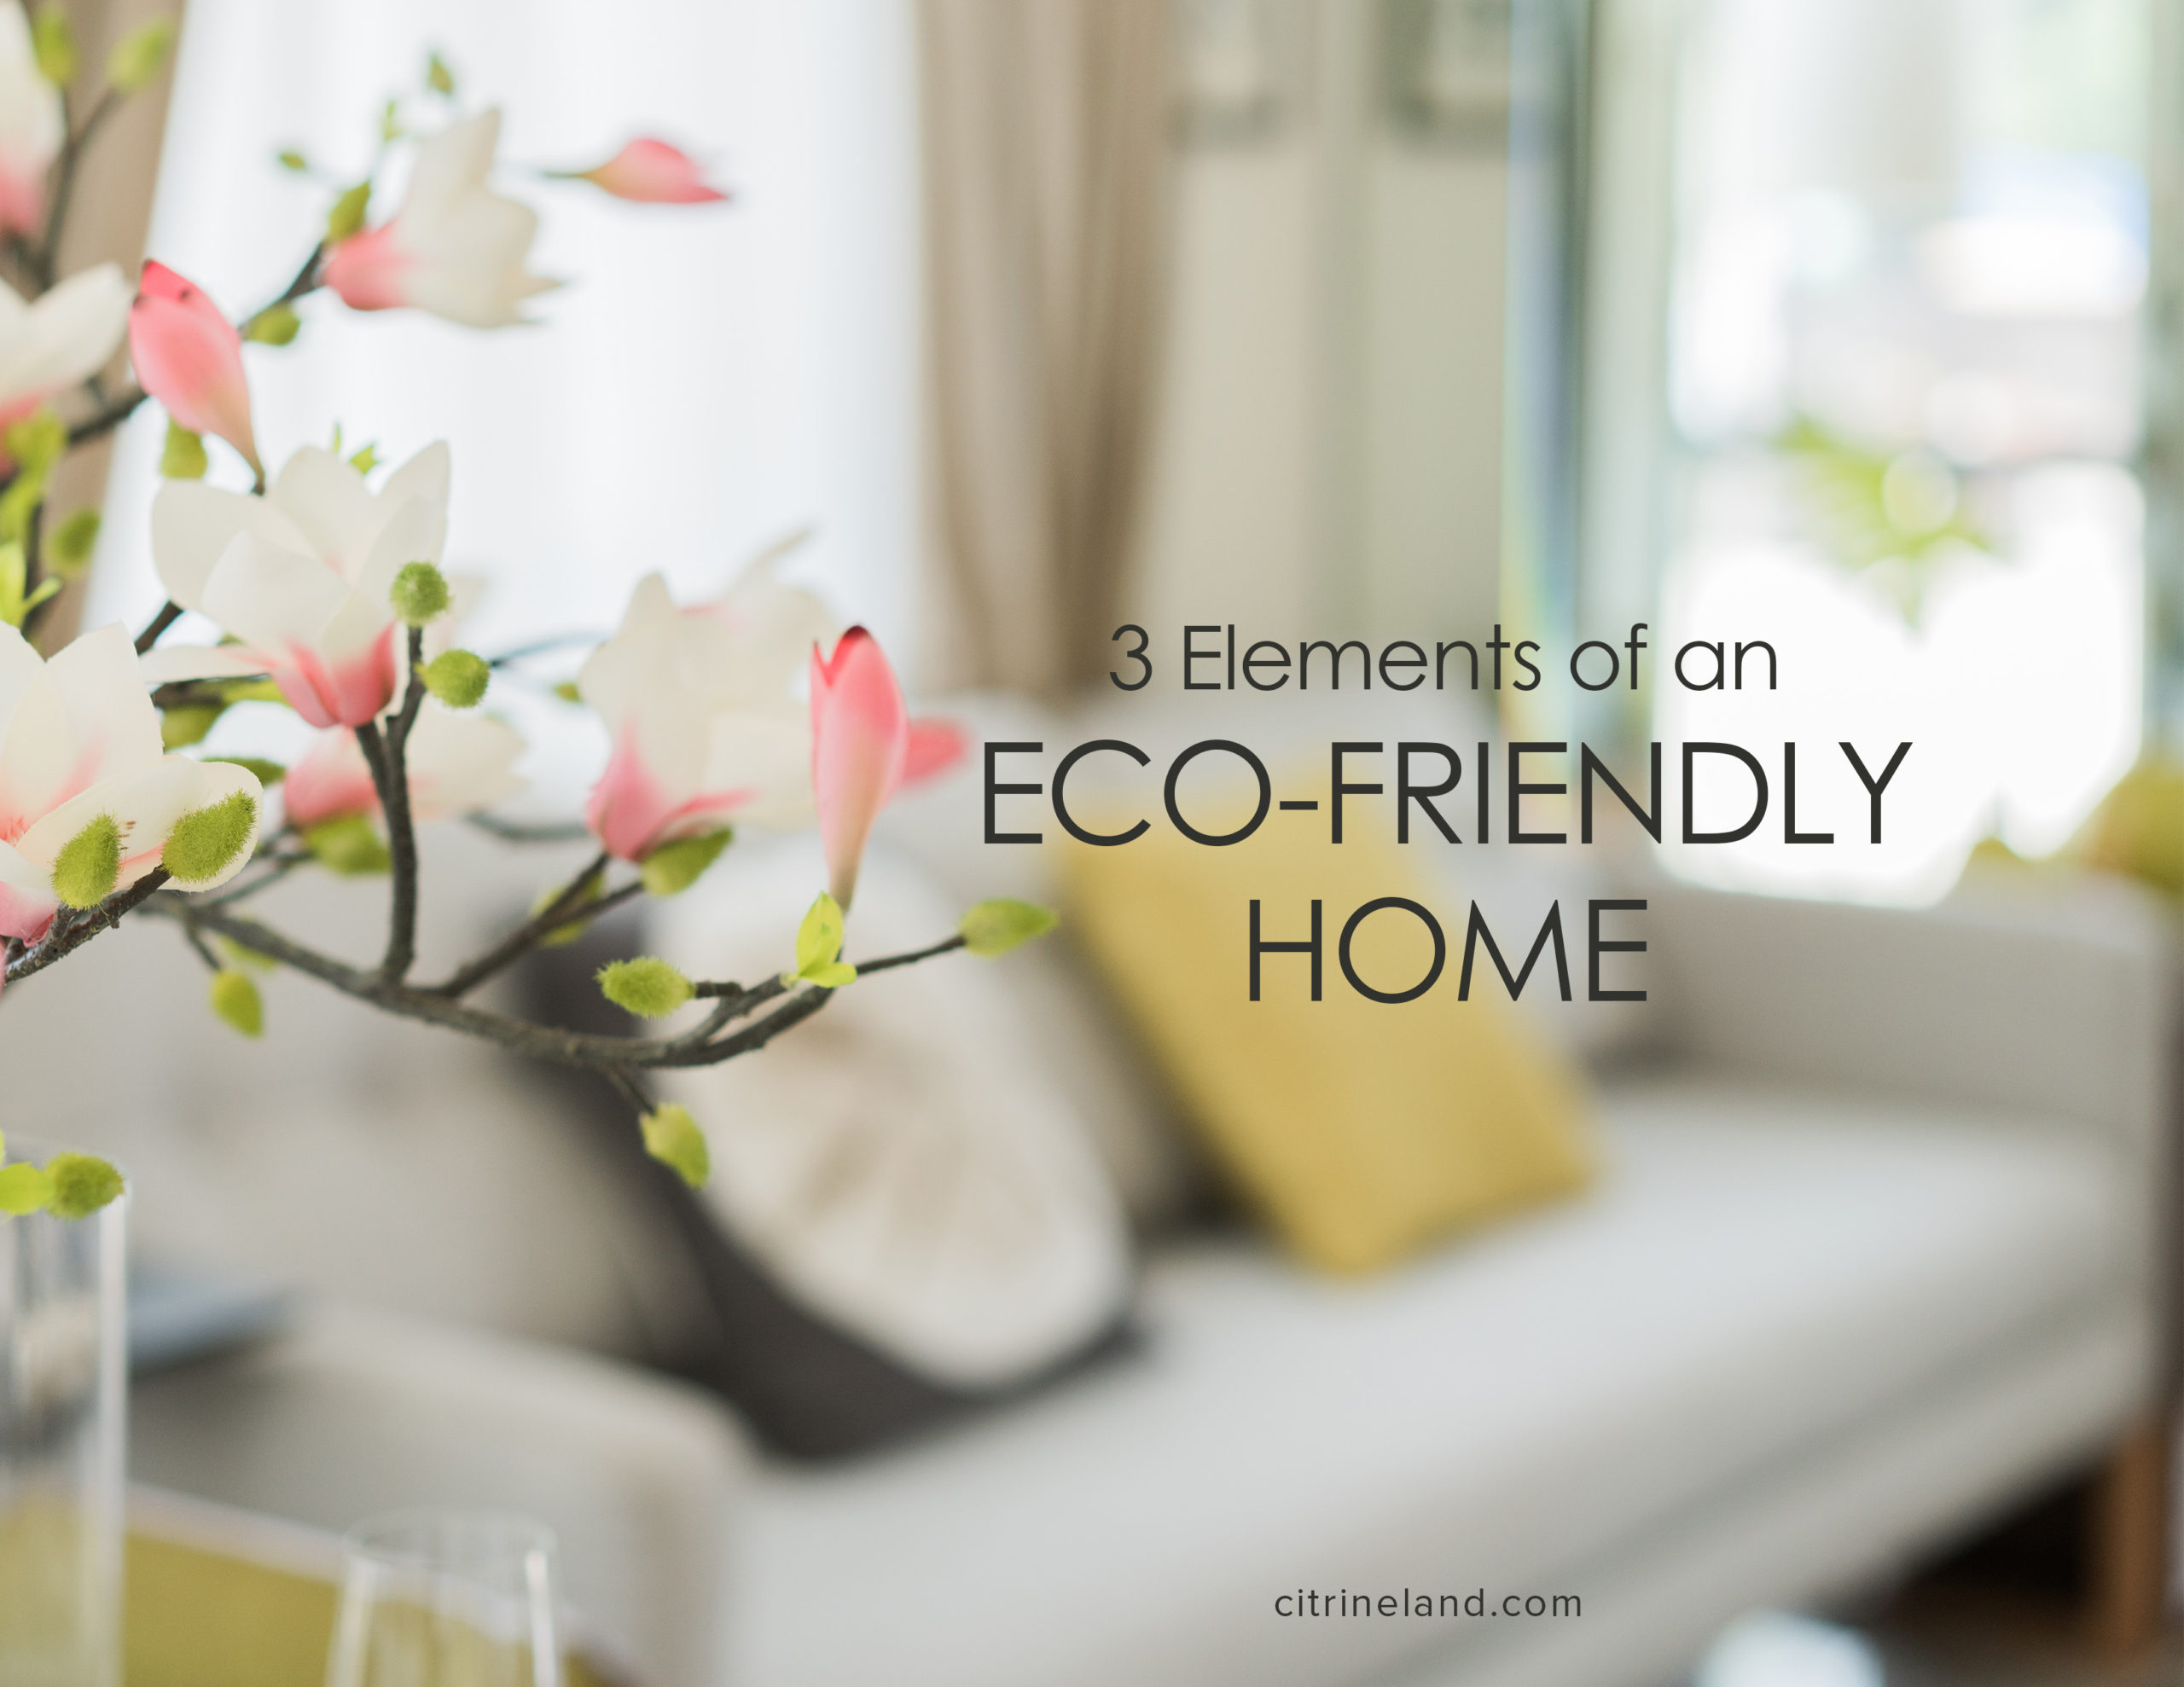 http://www.citrineland.com/looking-for-an-eco-friendly-ho-3-elements-you-need-to-consider/